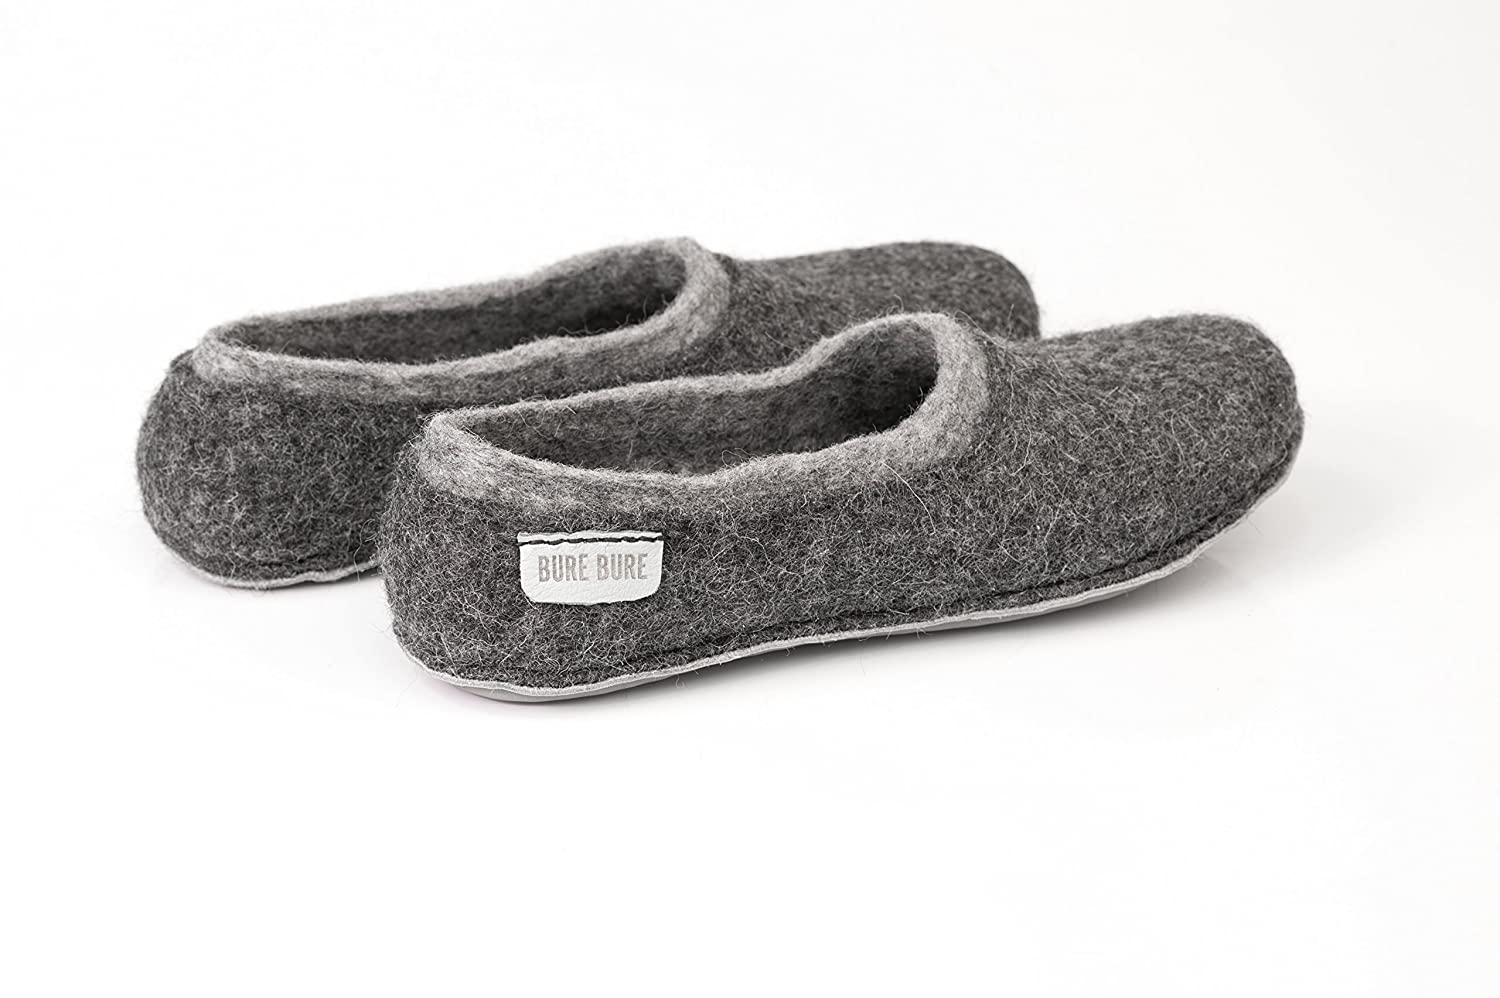 Felted Slippers for Men in shades of grey and black